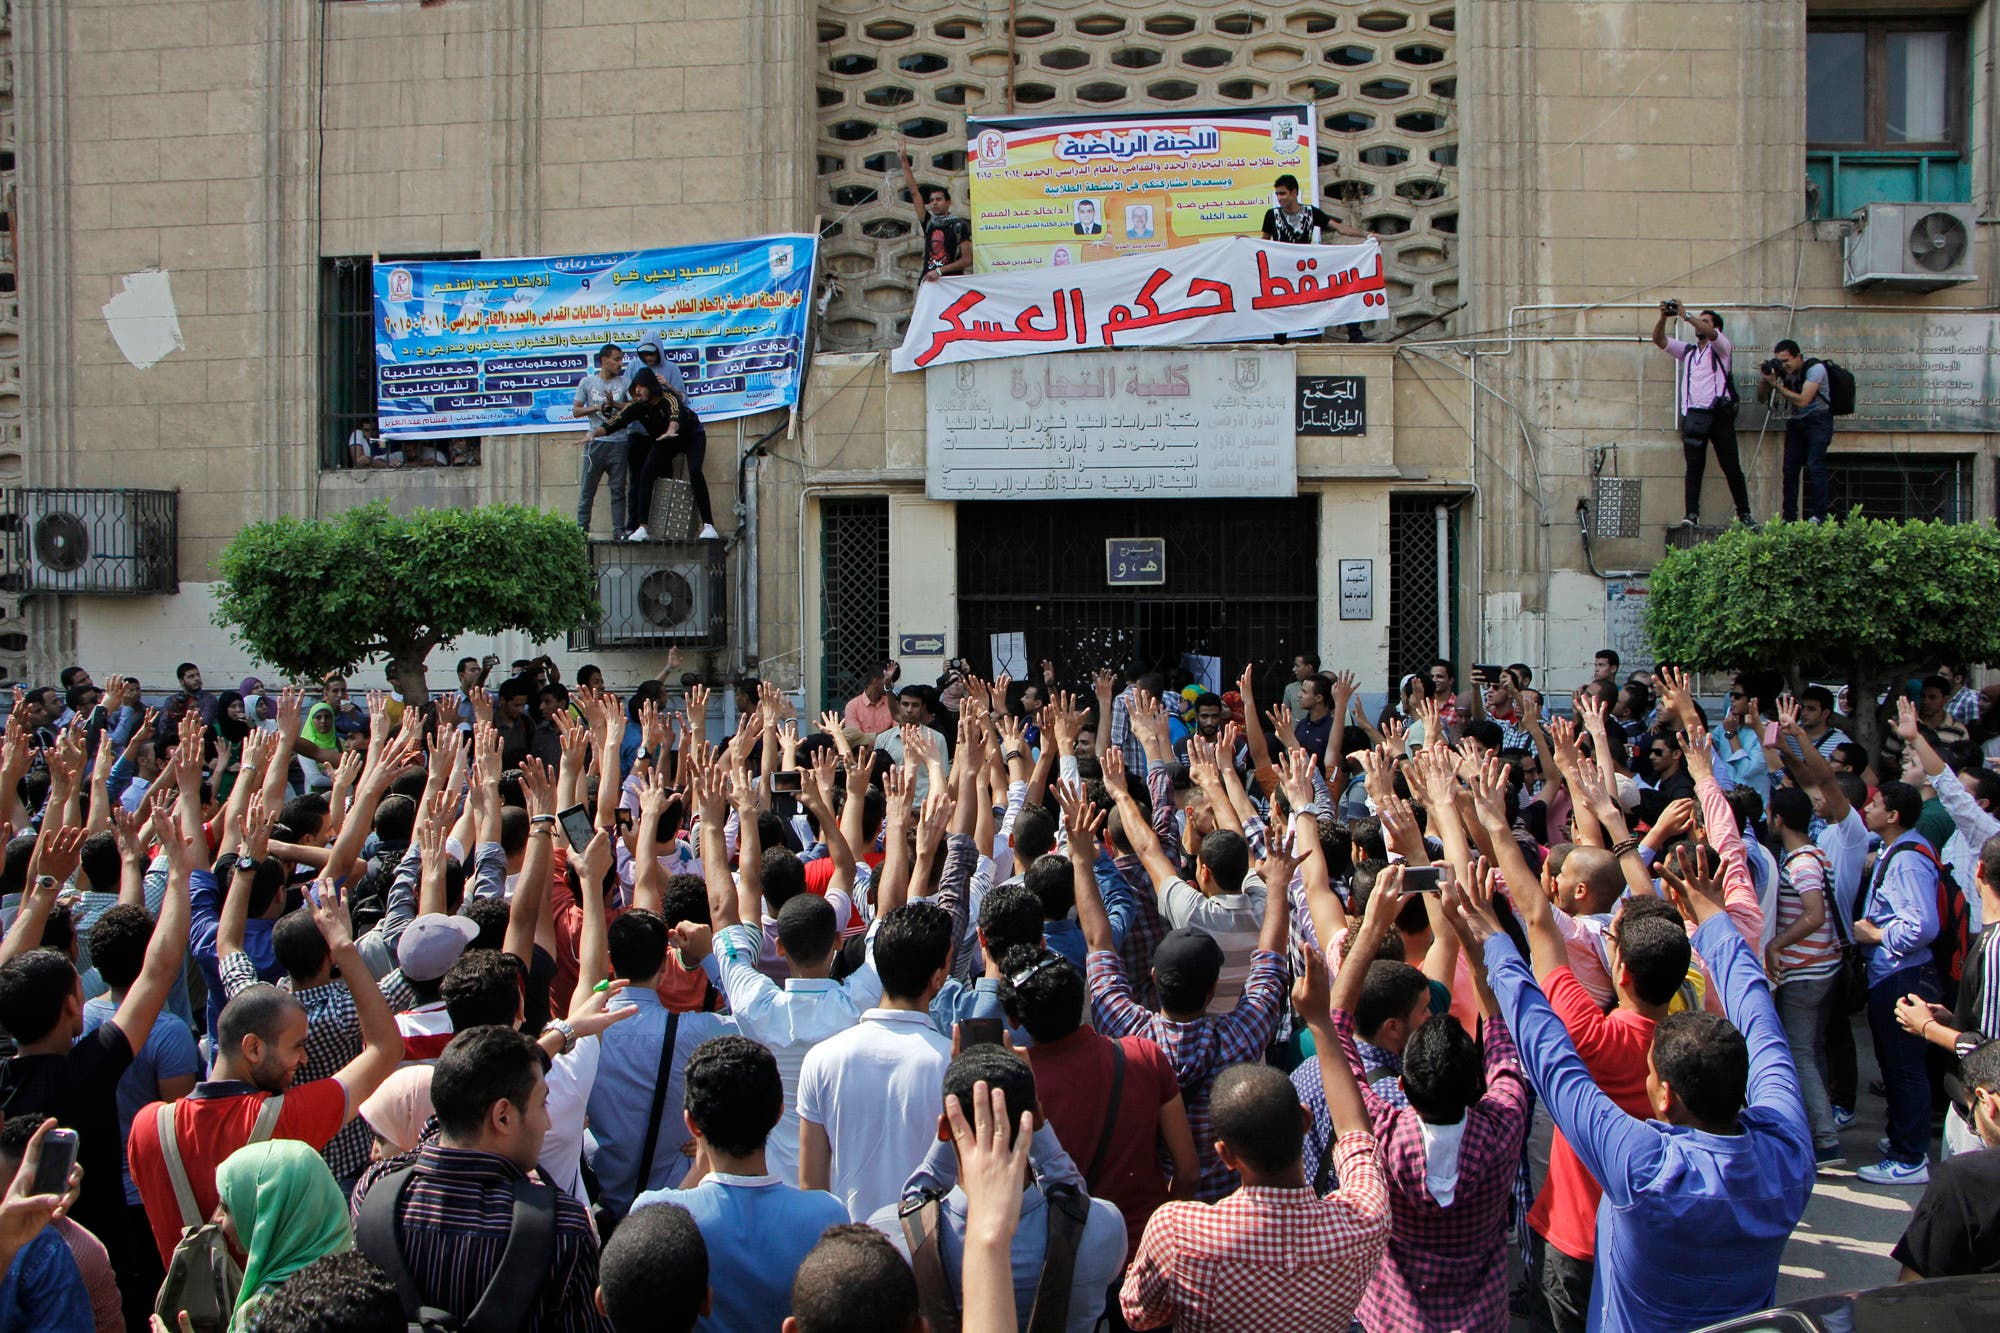 Student protesters hold a rally at Cairo University in Cairo, Egypt, Sunday, Oct. 12, 2014. AP